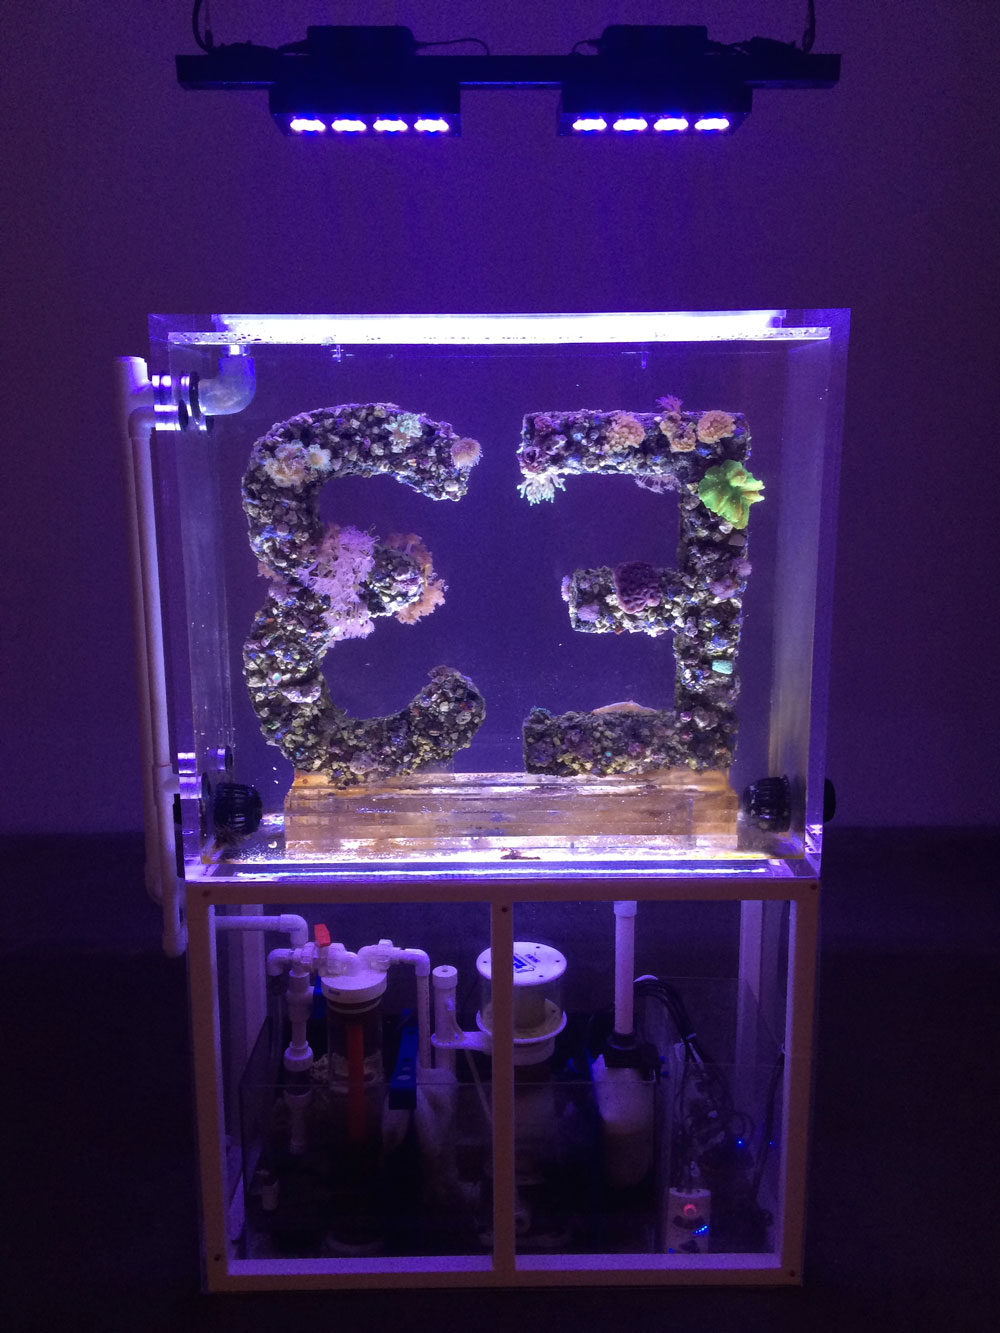 Another moment of interest in the Triennial was this sculpture by French-born artist Antoine Catala. It's an aquarium with live corral and was originally commissioned by Carnegie Museum of Art for a solo show Antoine did there. Totally weird but addictive.